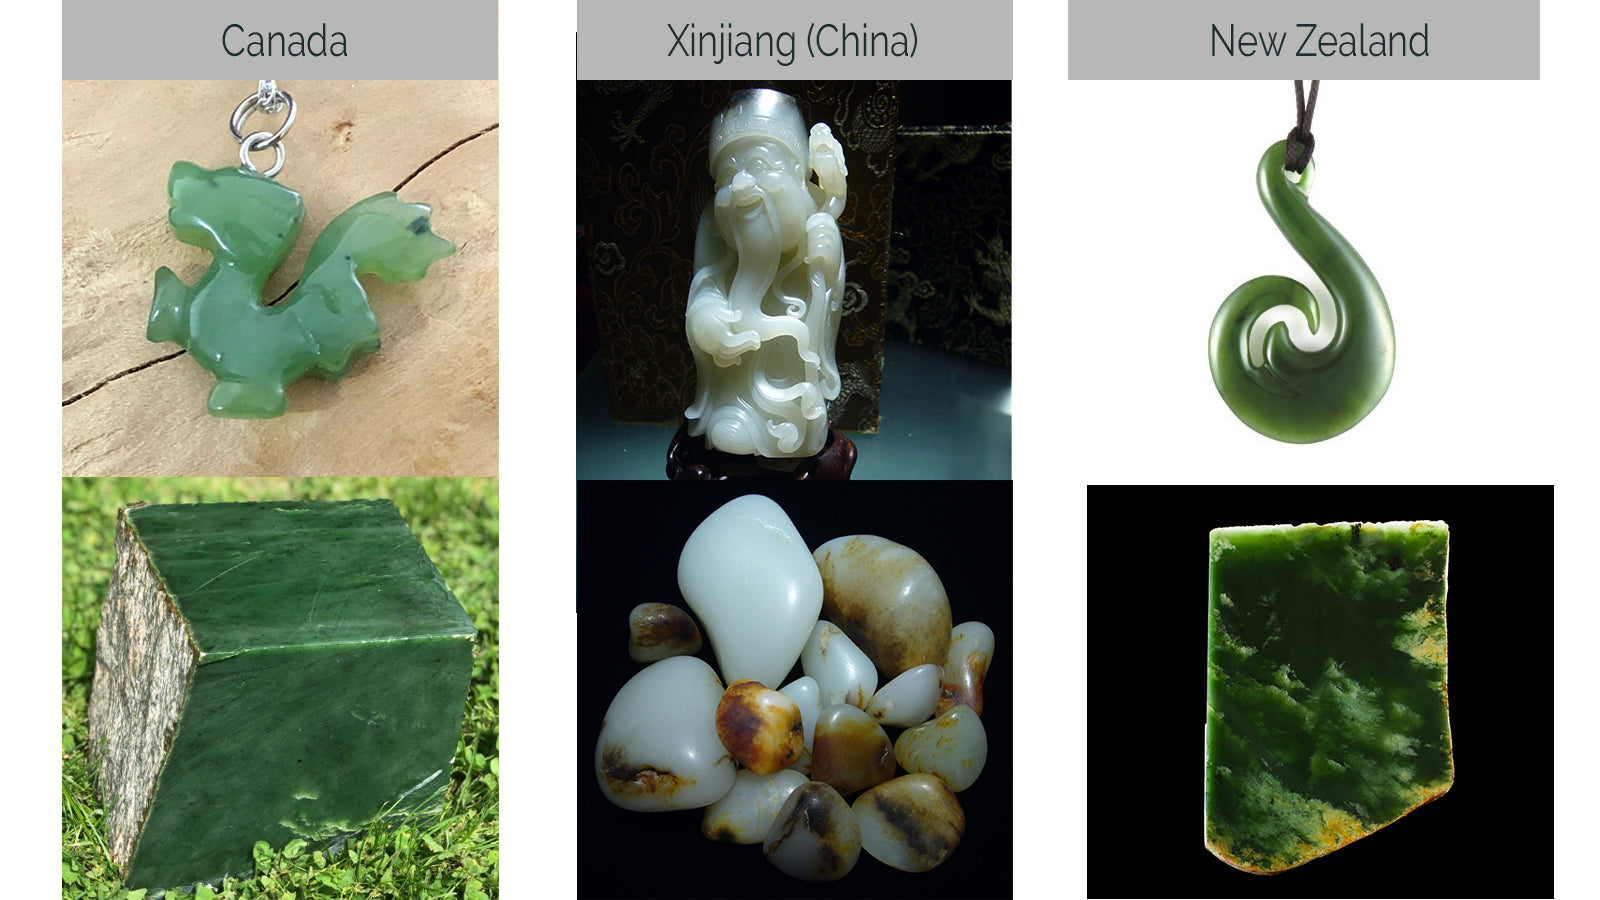 Nephrite comparison by origin: Canada, China, New Zealand